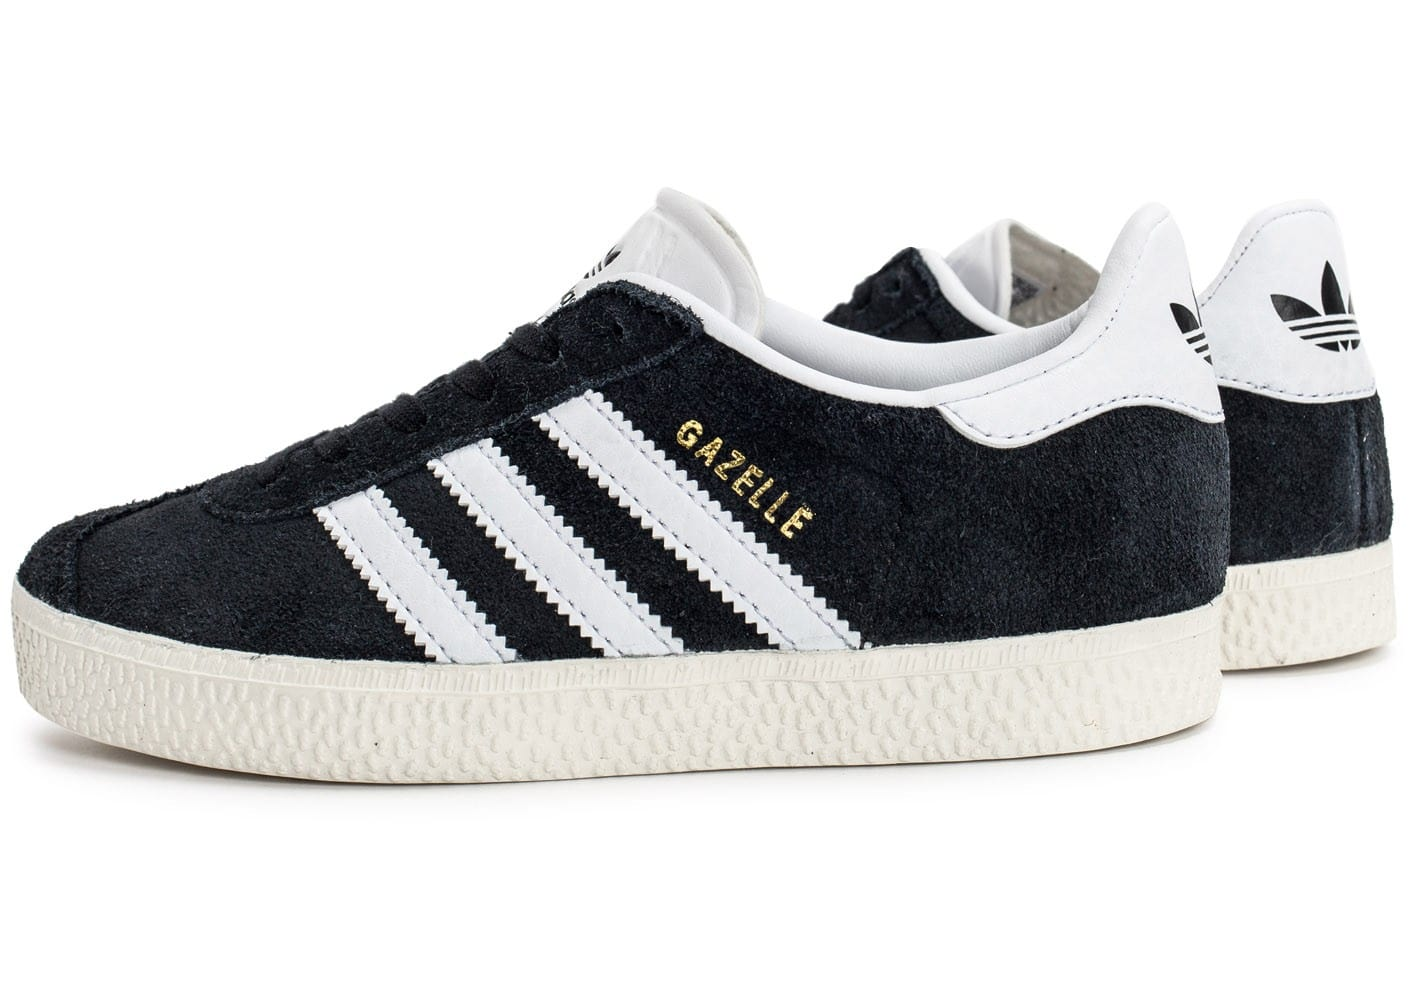 adidas gazelle c enfant noire chaussures adidas chausport. Black Bedroom Furniture Sets. Home Design Ideas